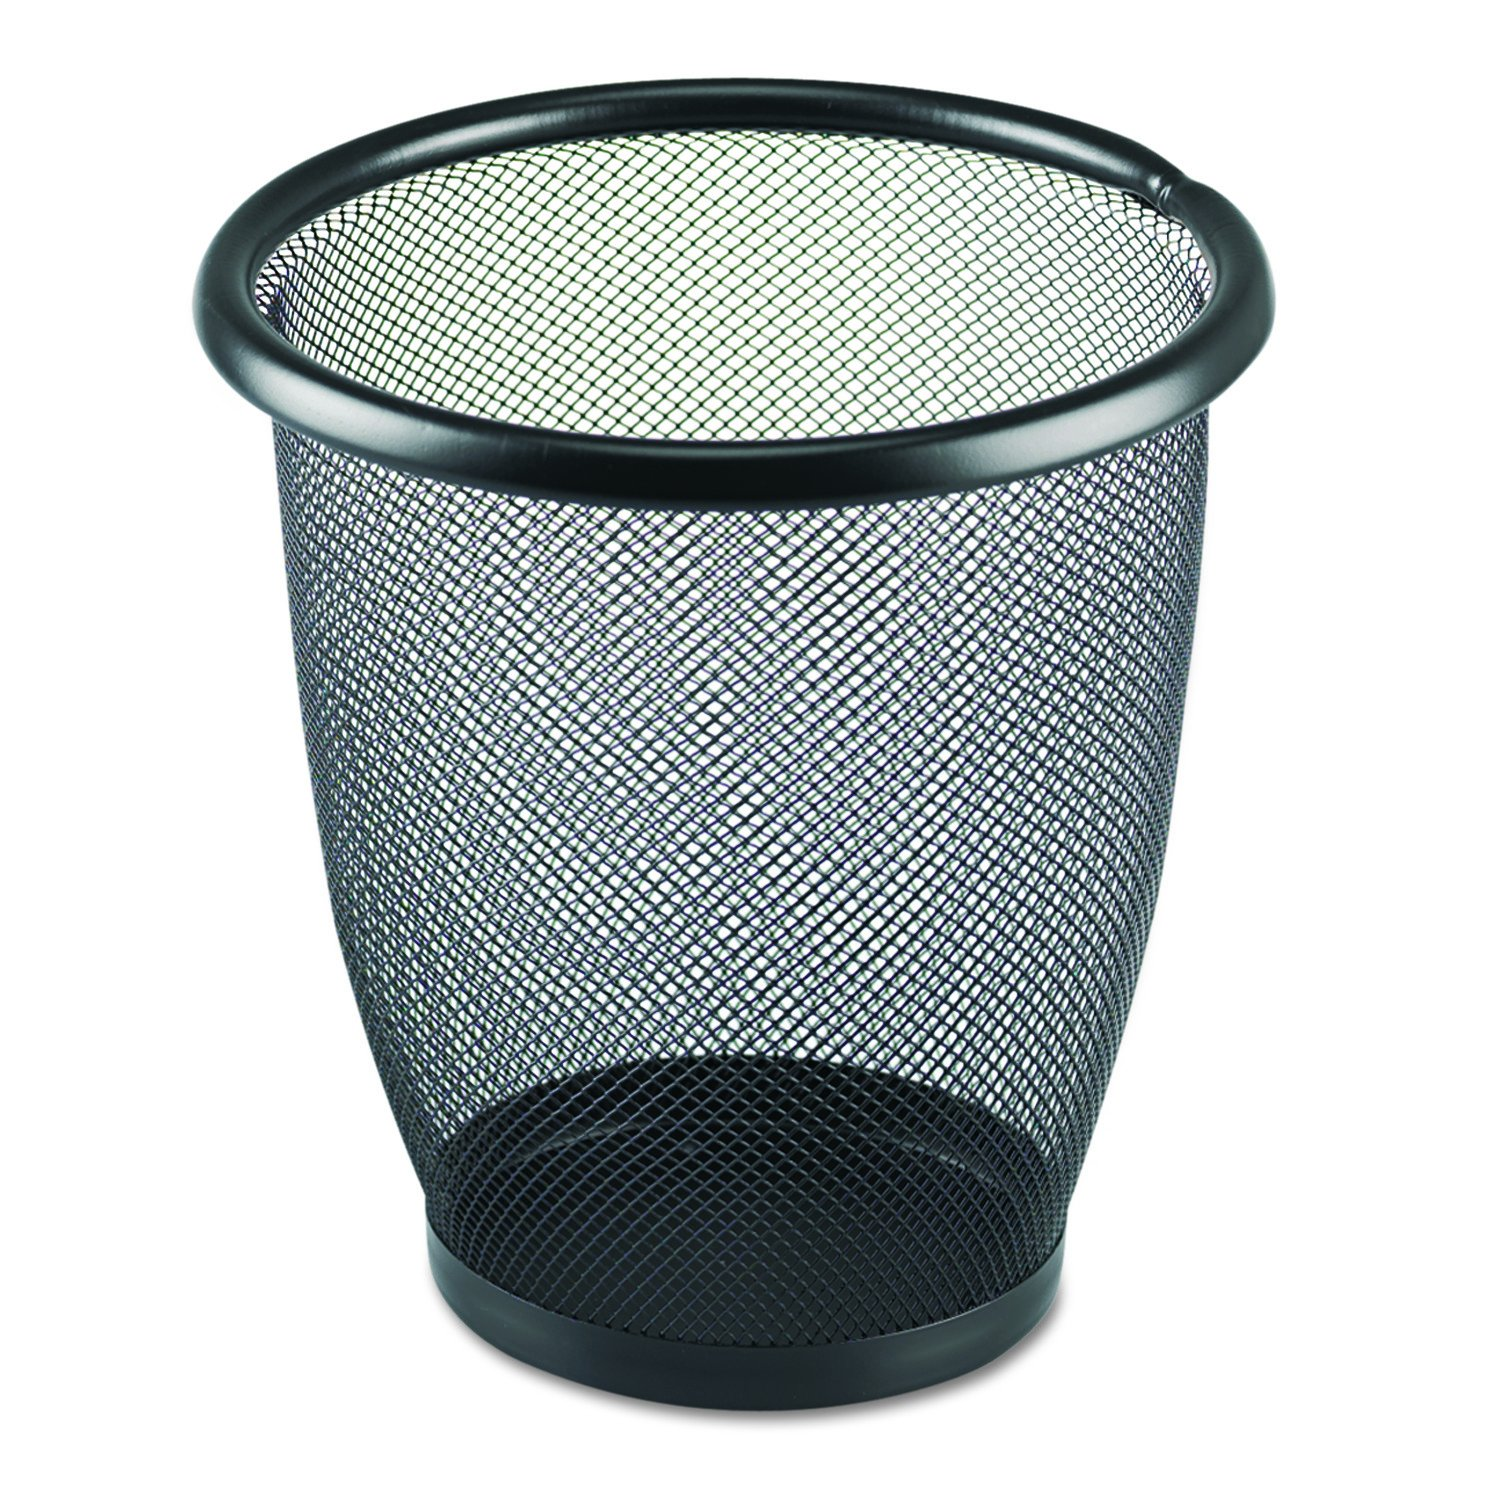 Amazon.com: Safco Products 9716BL Onyx Mesh Small Round Wastebasket ...